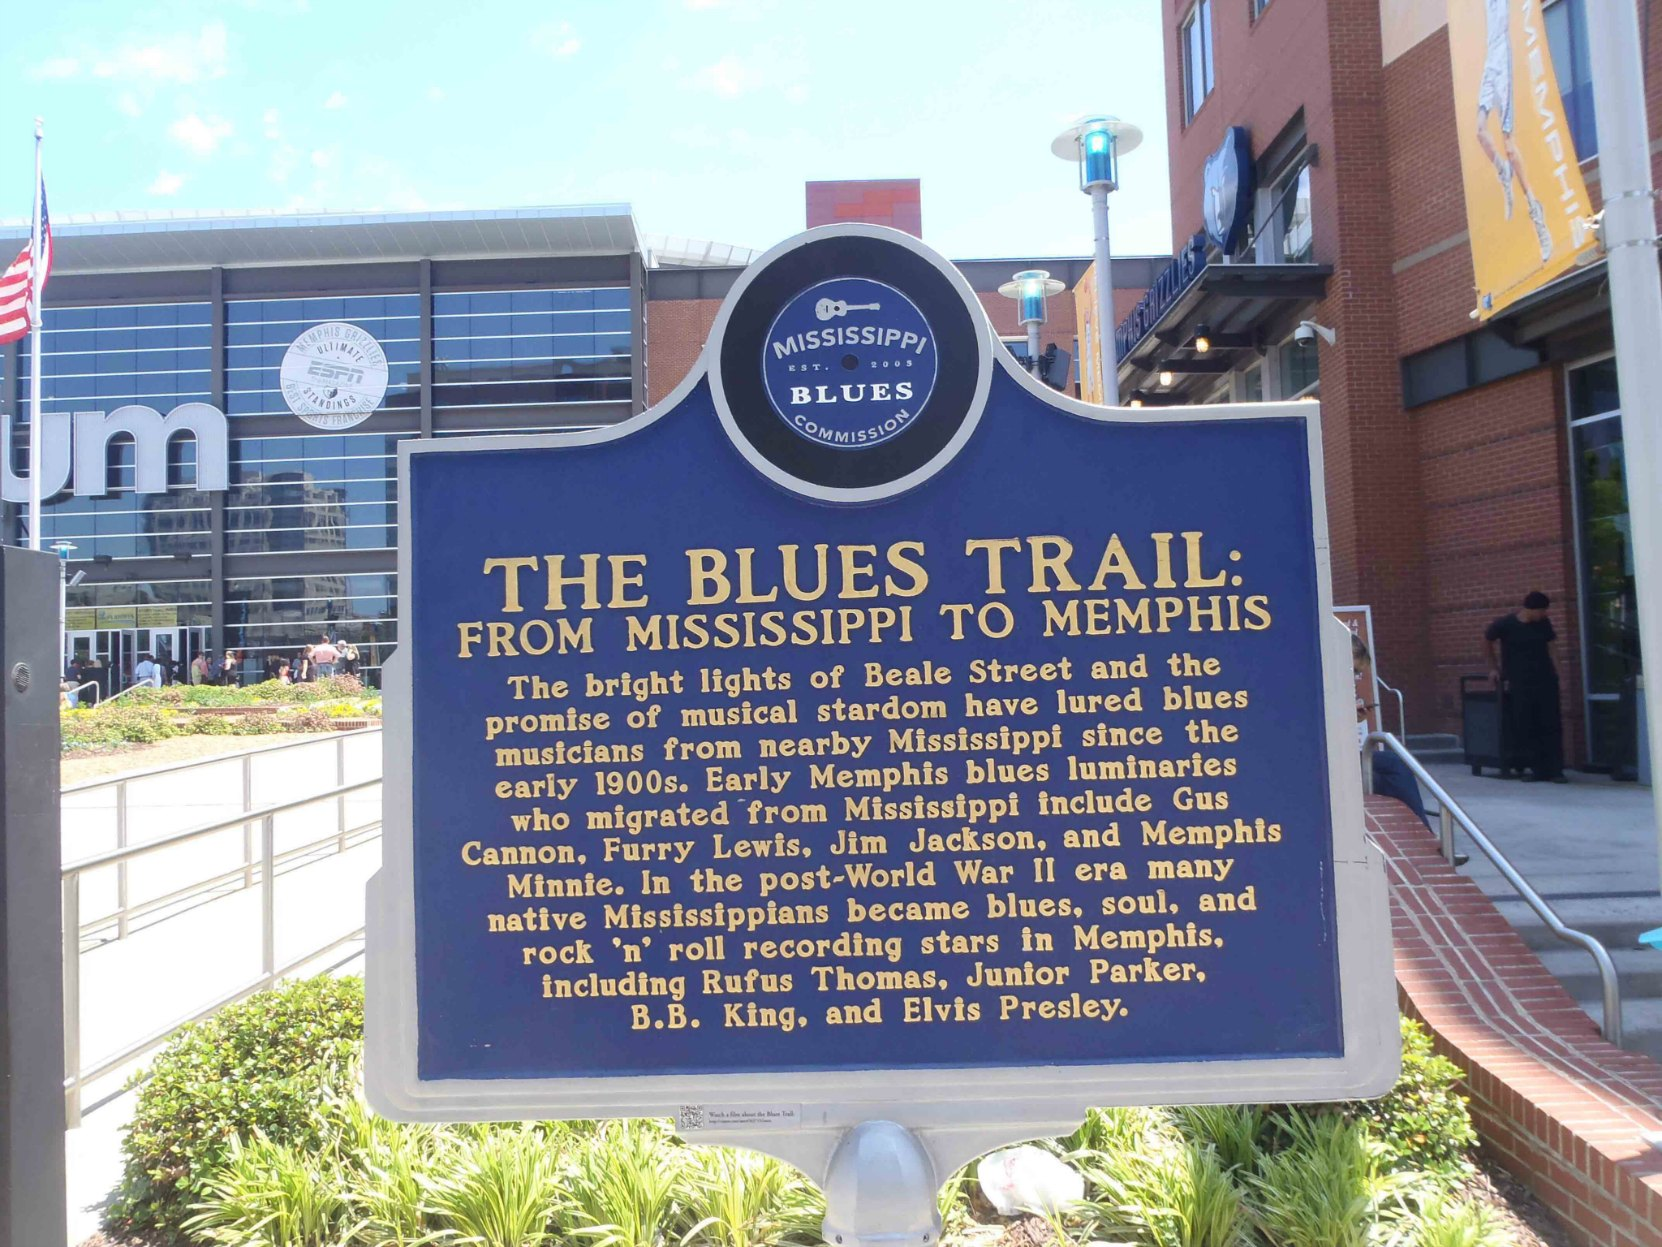 Mississippi Blues Trail marker, The Blues Trail: From Mississippi to Memphis, Memphis, Tennessee